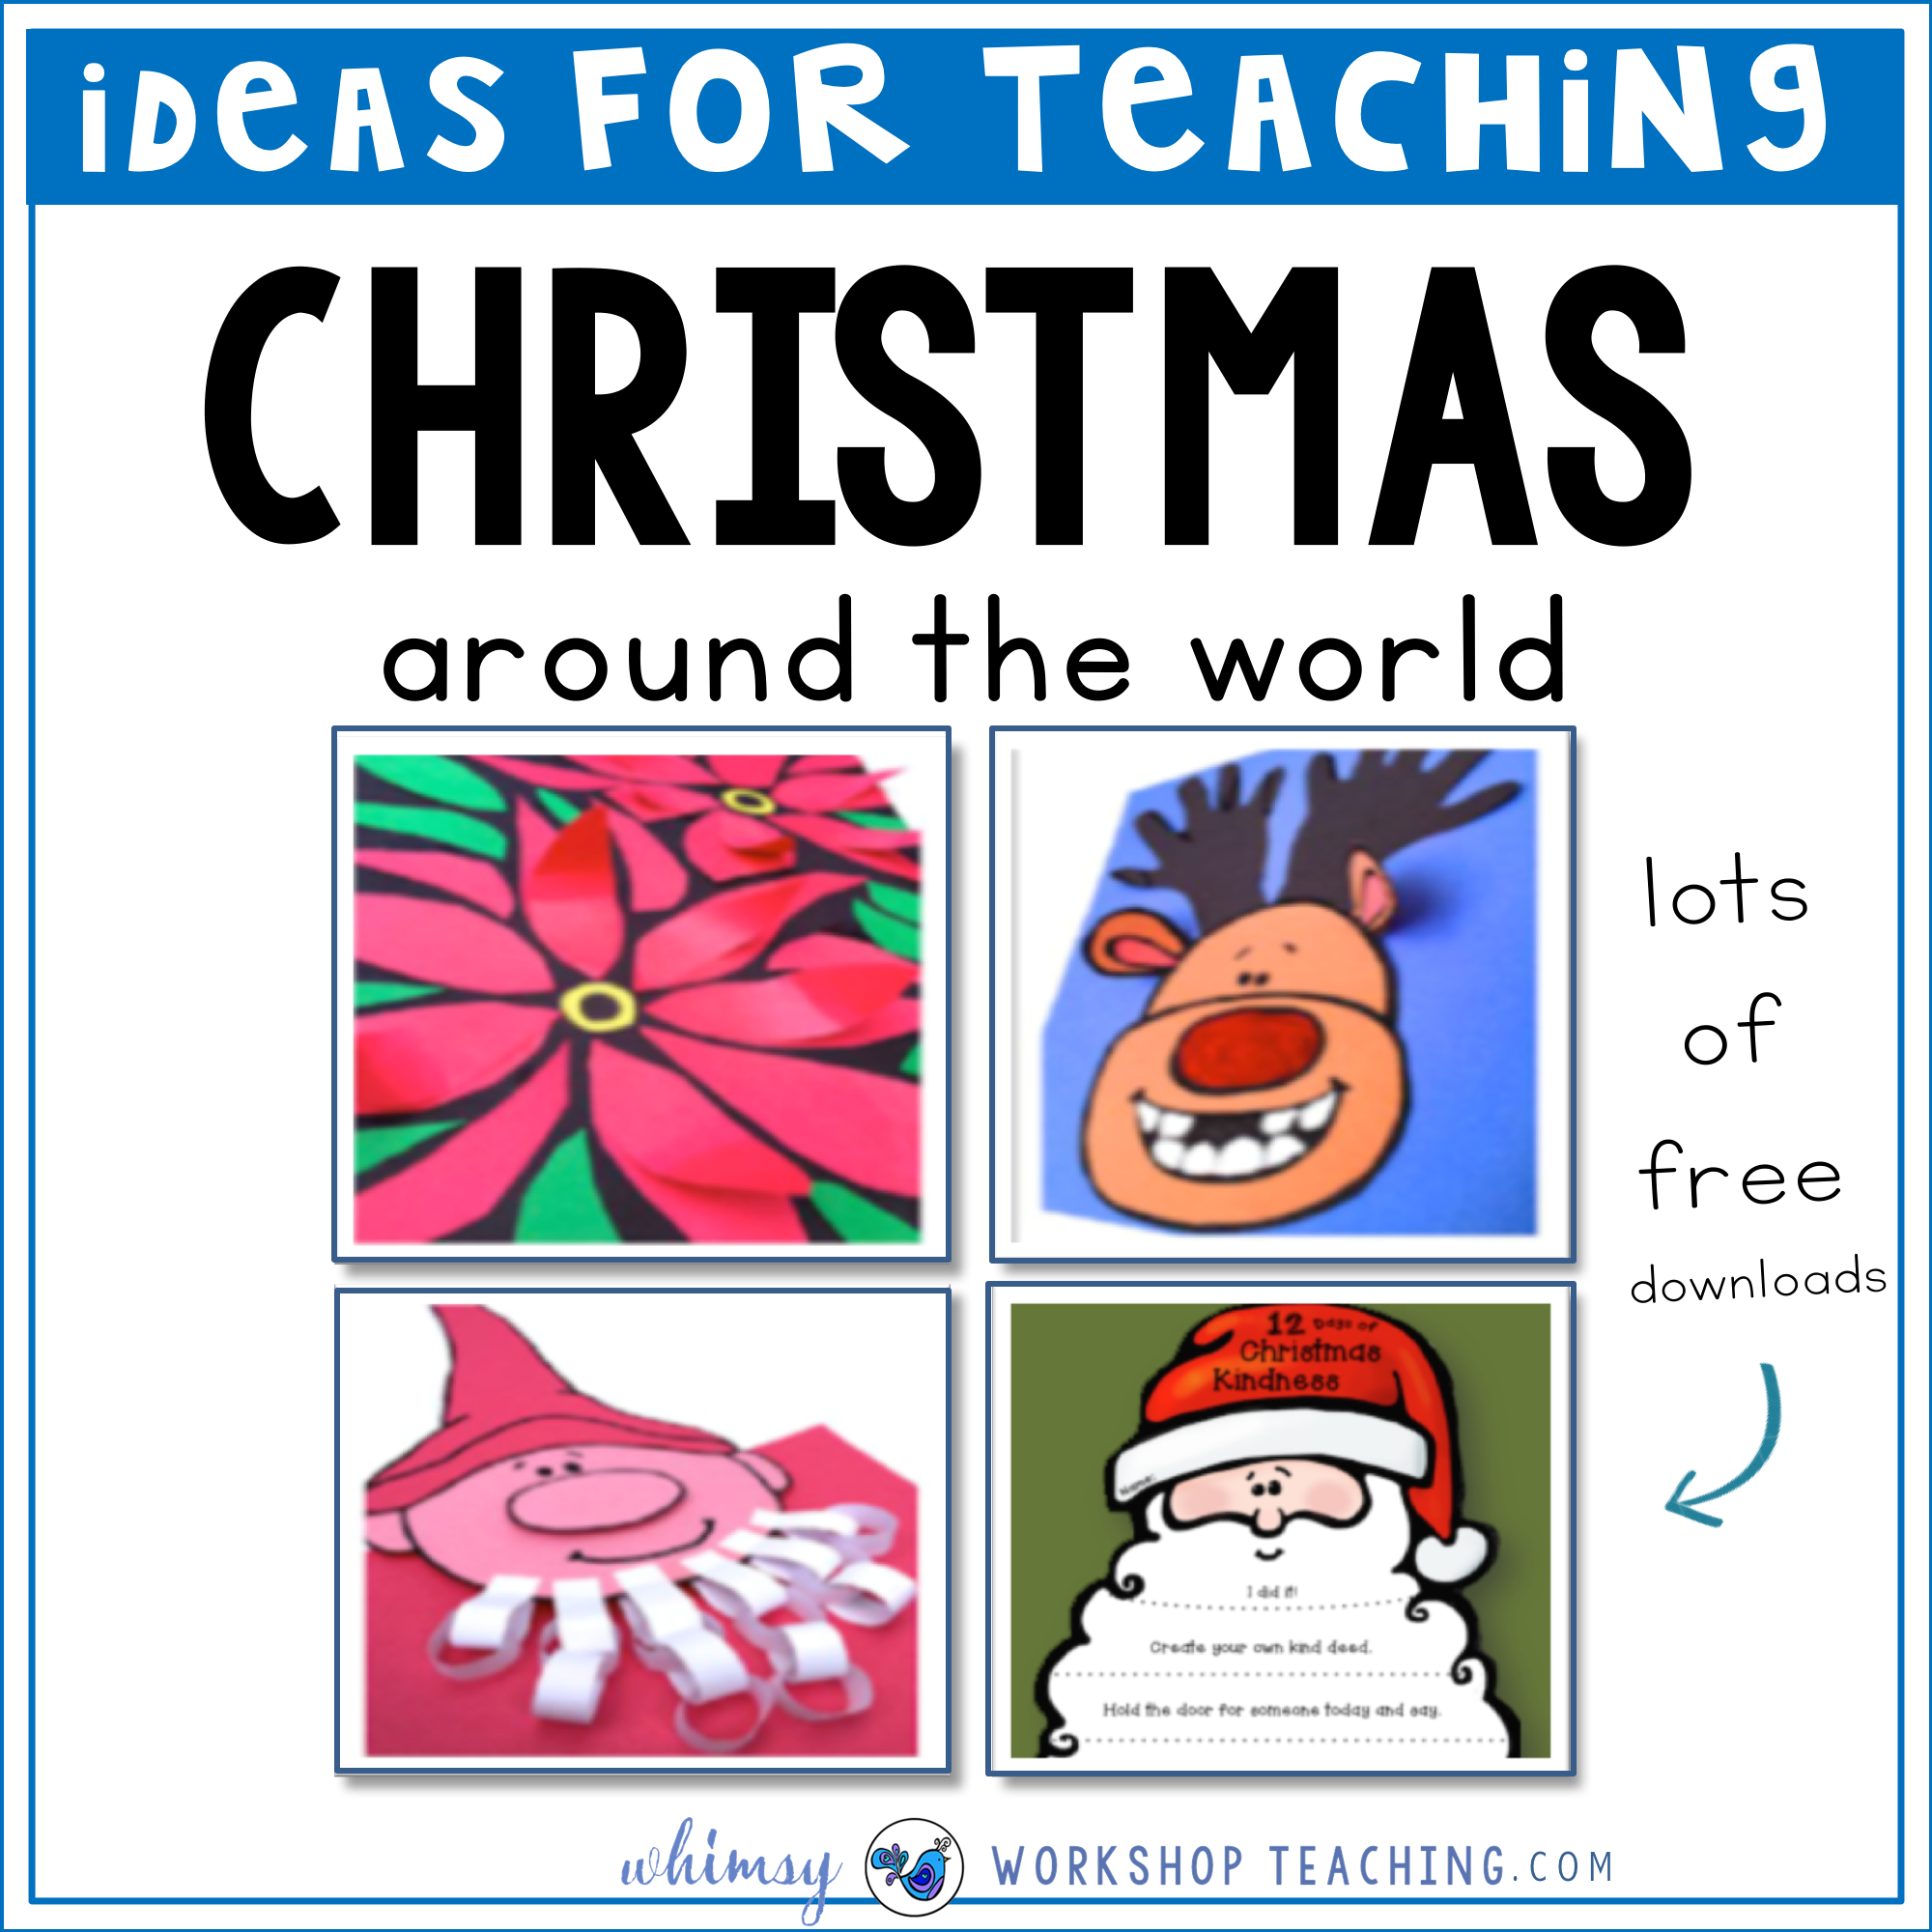 Christmas Kindness Around The World